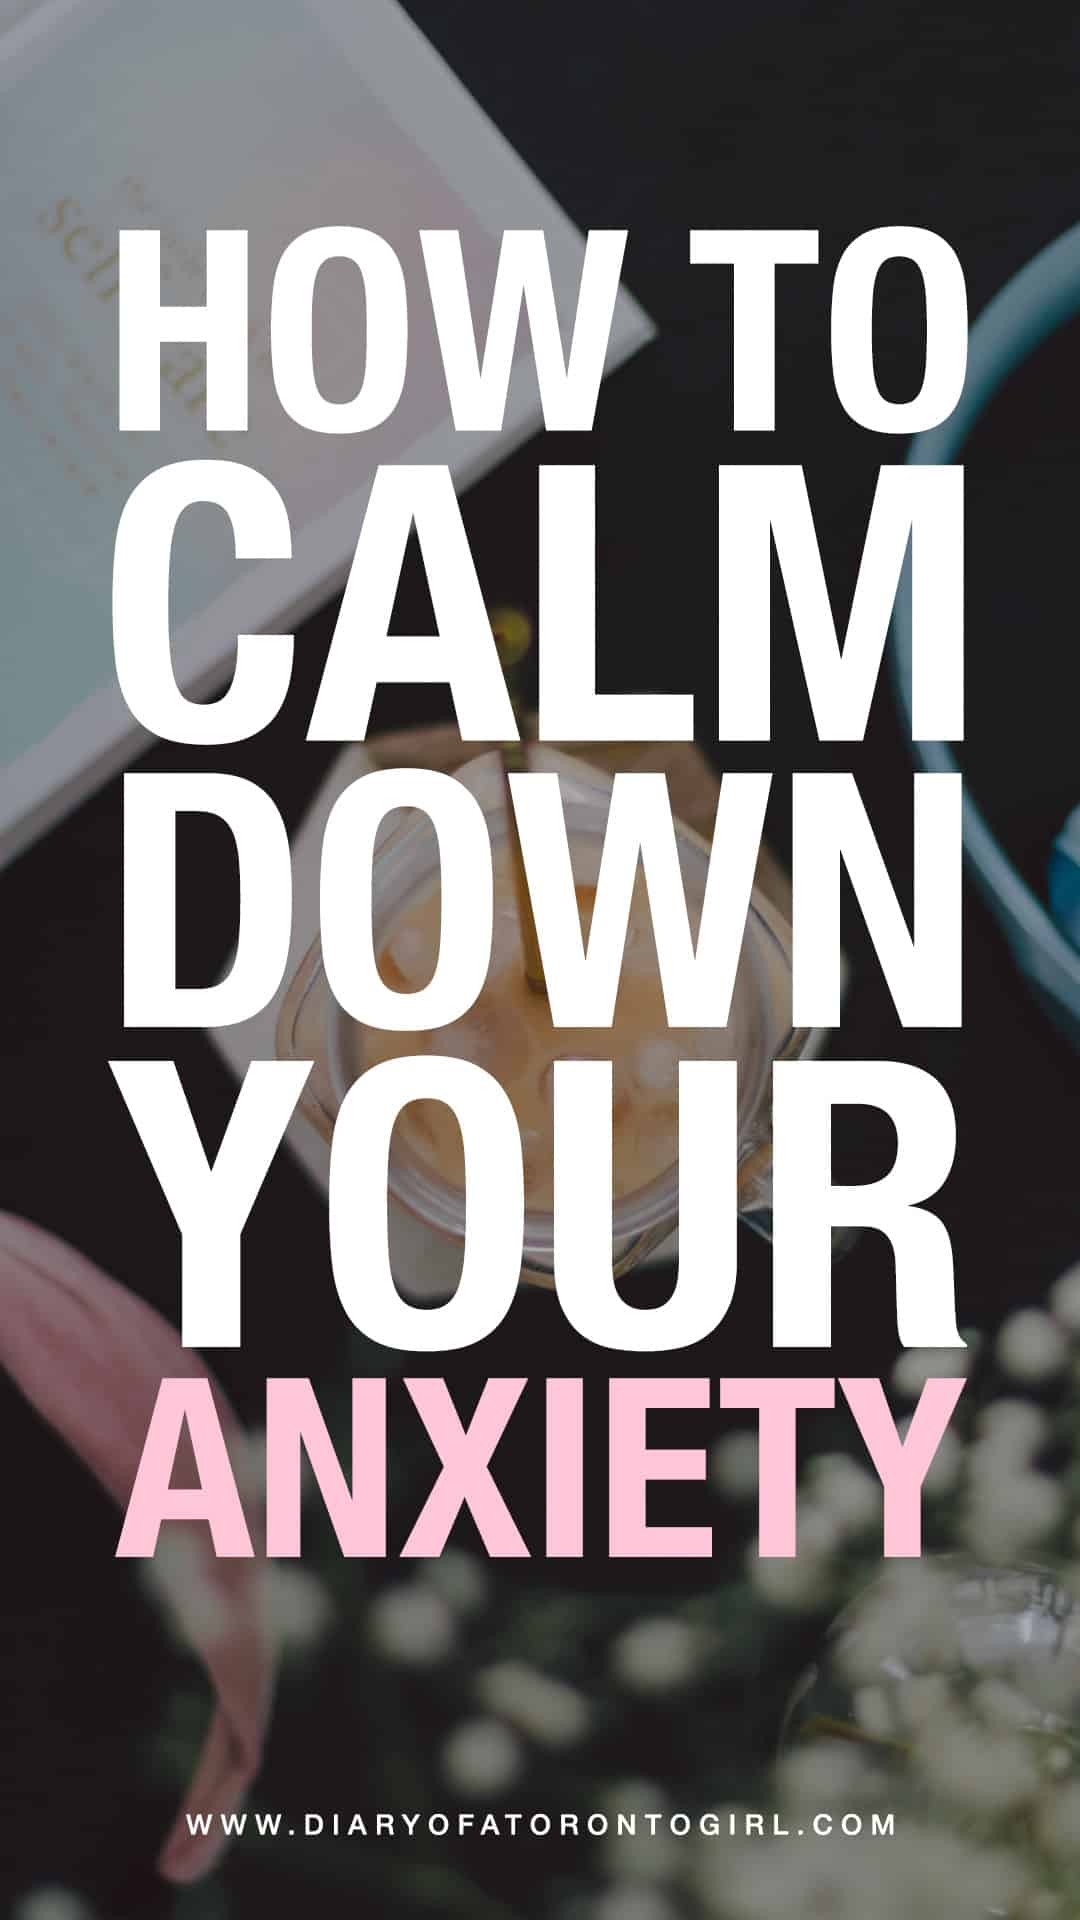 Feeling a little bit anxious? Here are some useful tips on how to help you calm your anxiety down and prevent panic attacks.